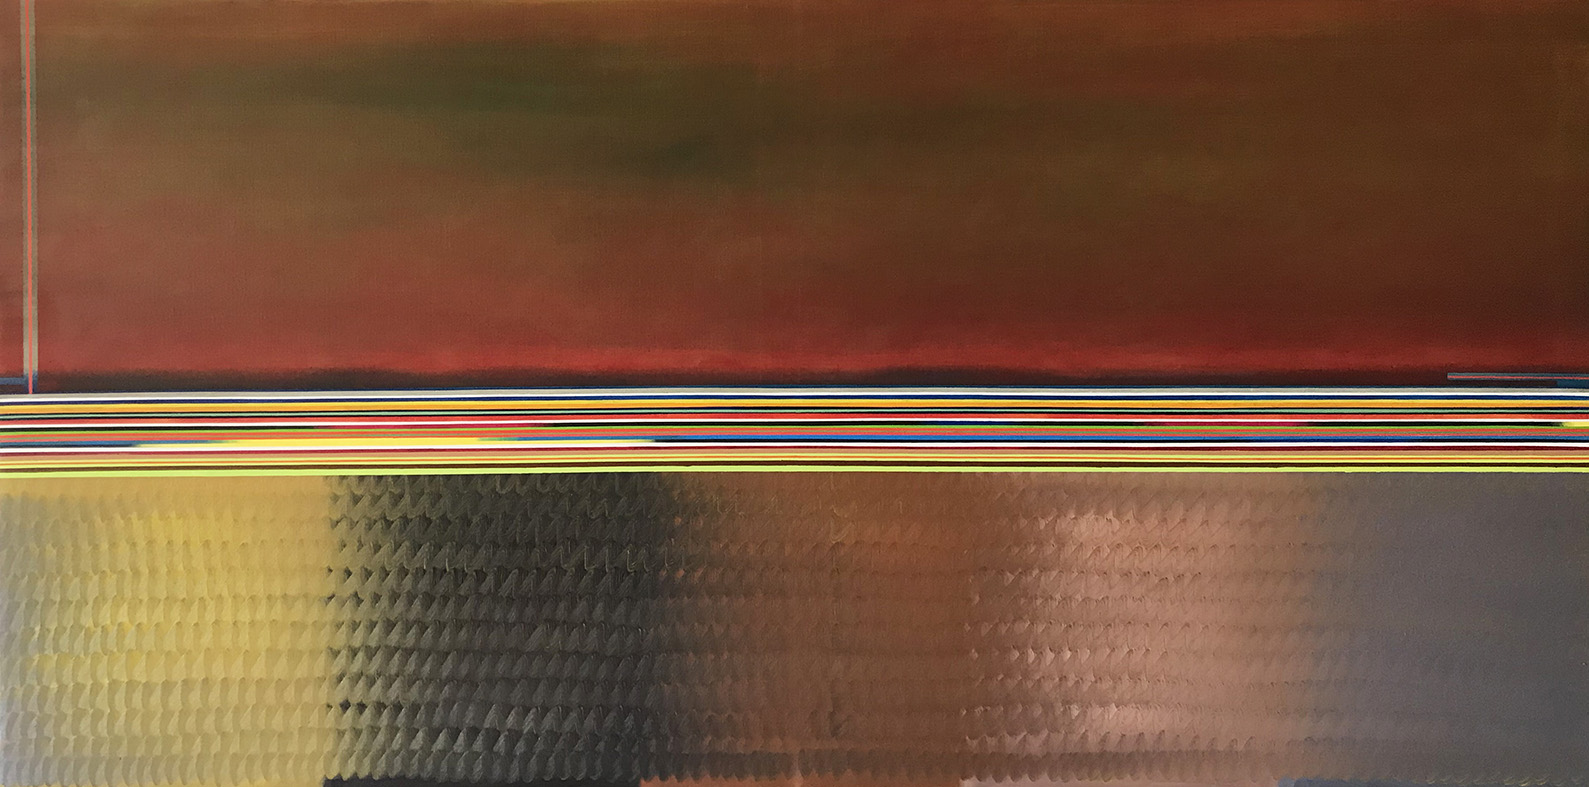 Lndskp 1 (100x200cm) 2018 (private collection, New York)